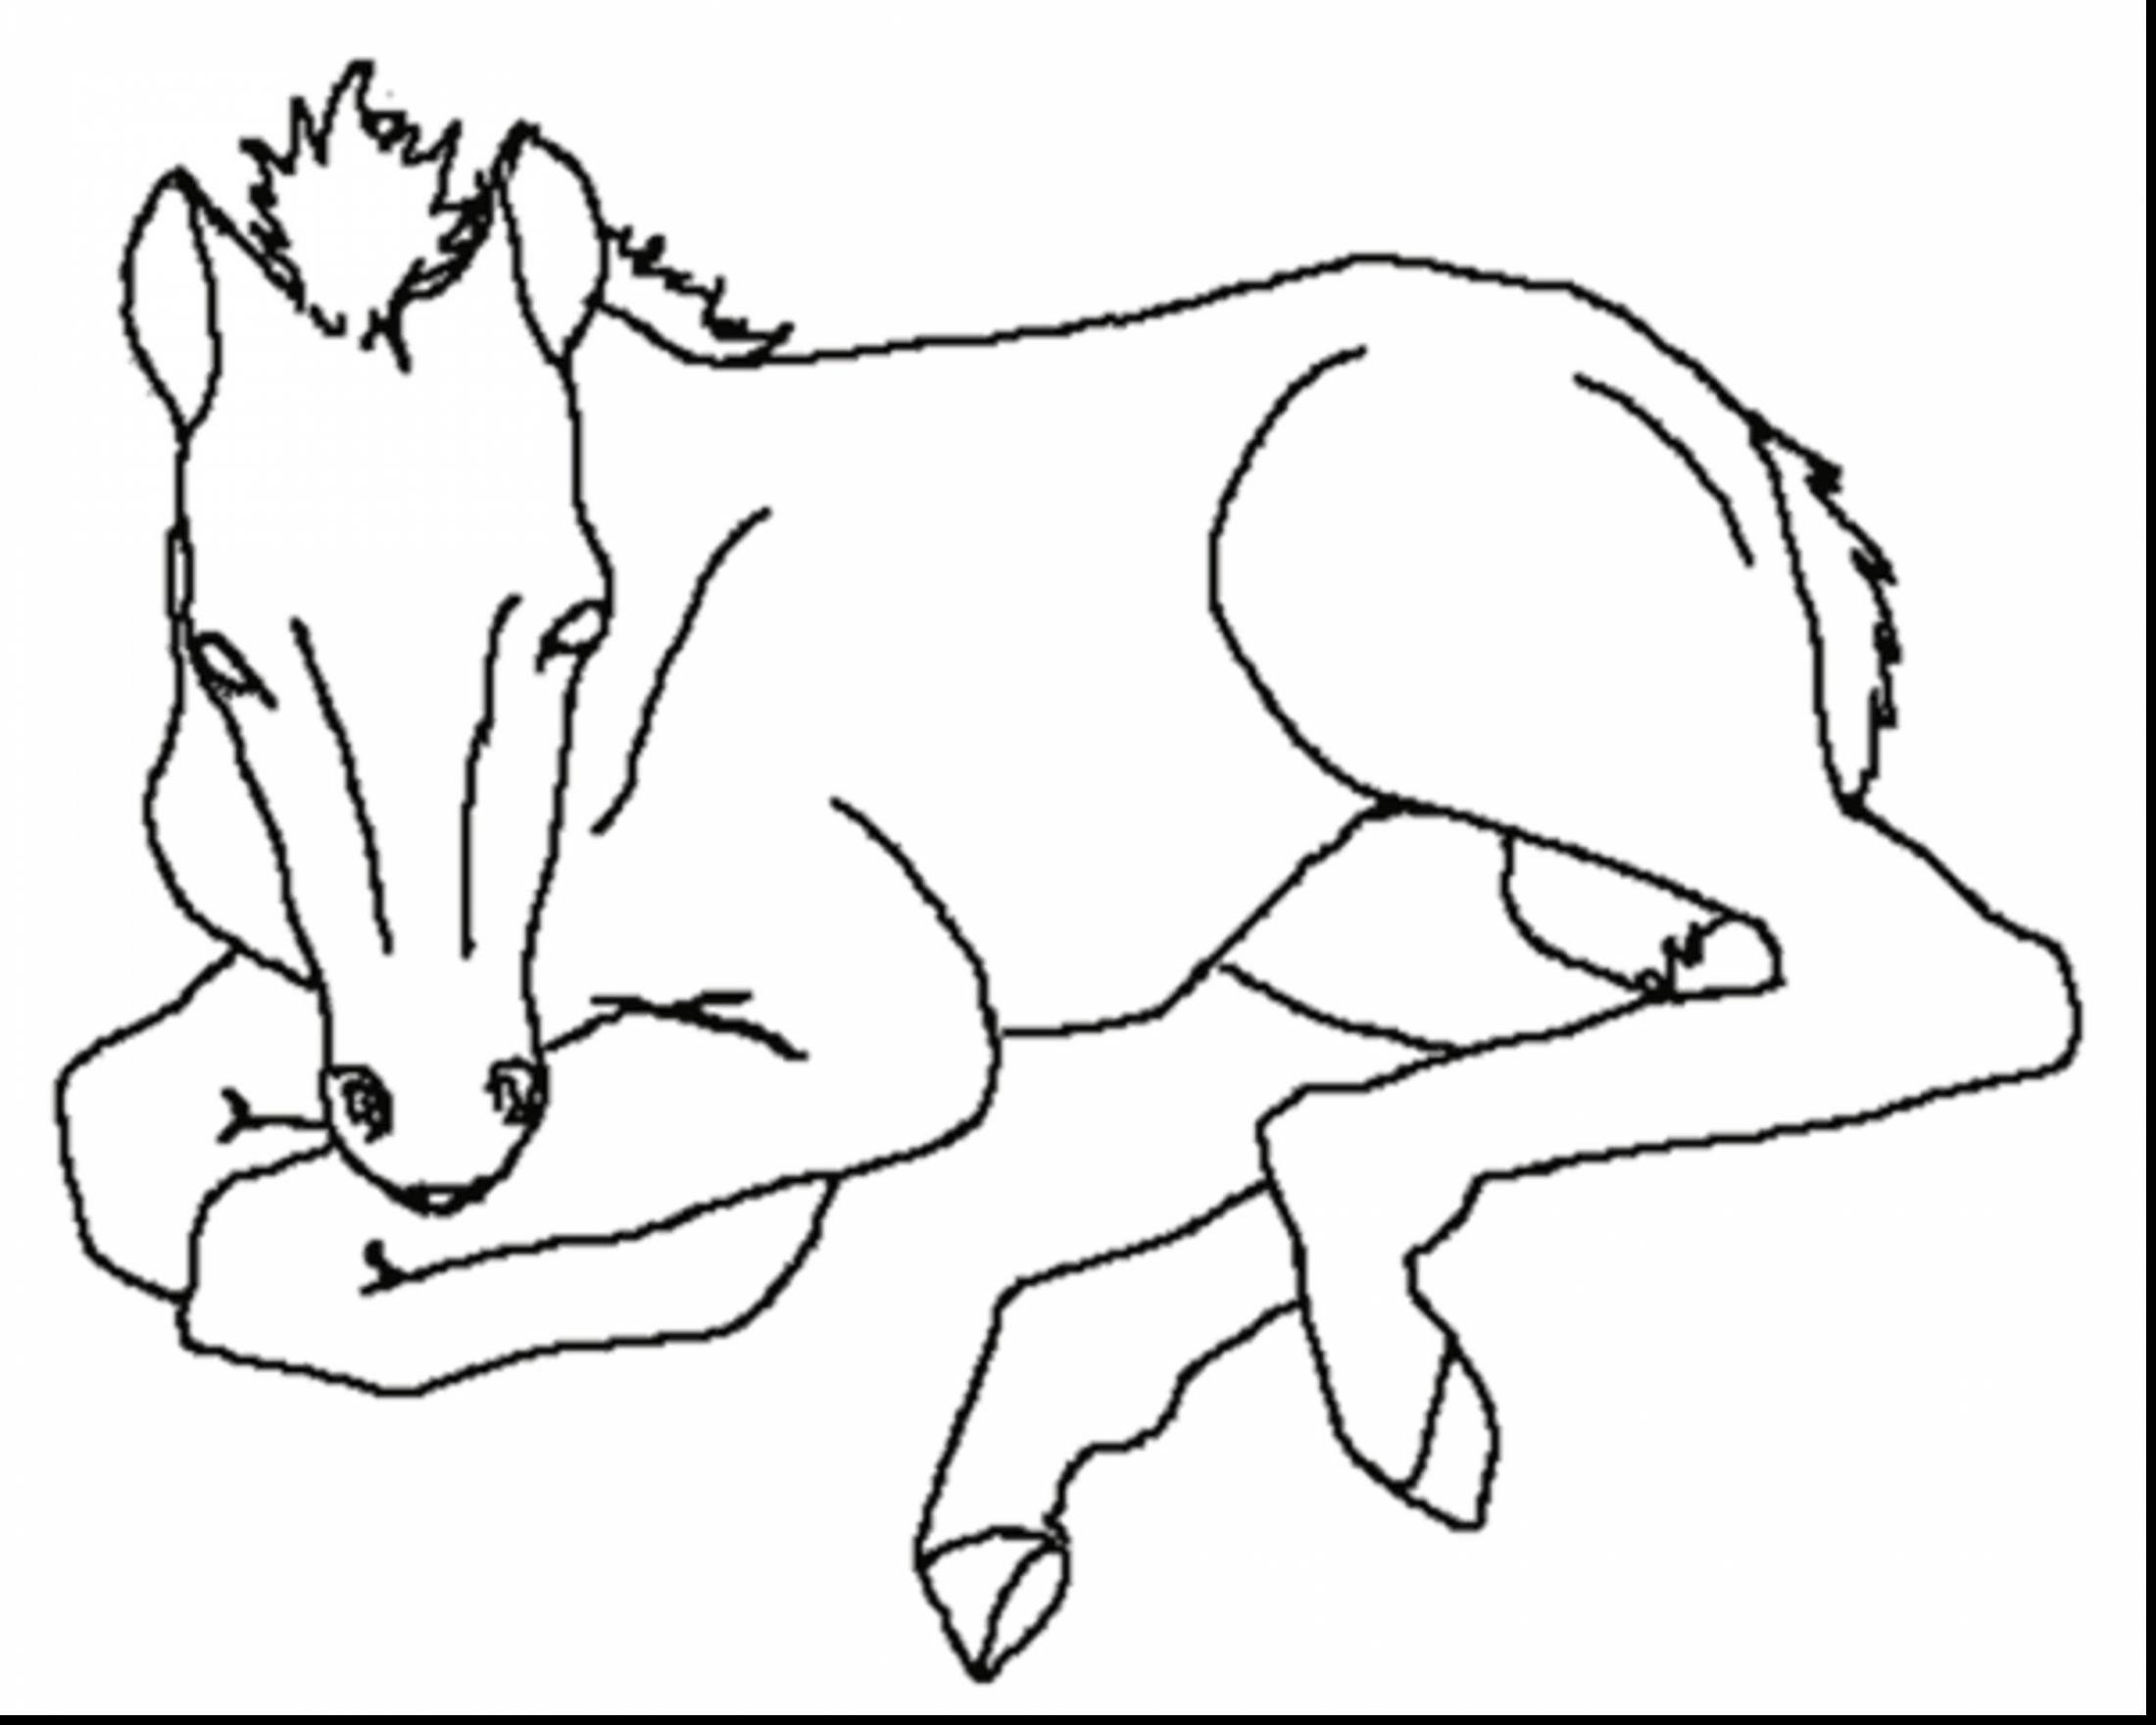 Cute Coloring Pages Baby Horses to Print Of Sturdy Coloring Page A Horse Pages Horses R 3353 Unknown Download